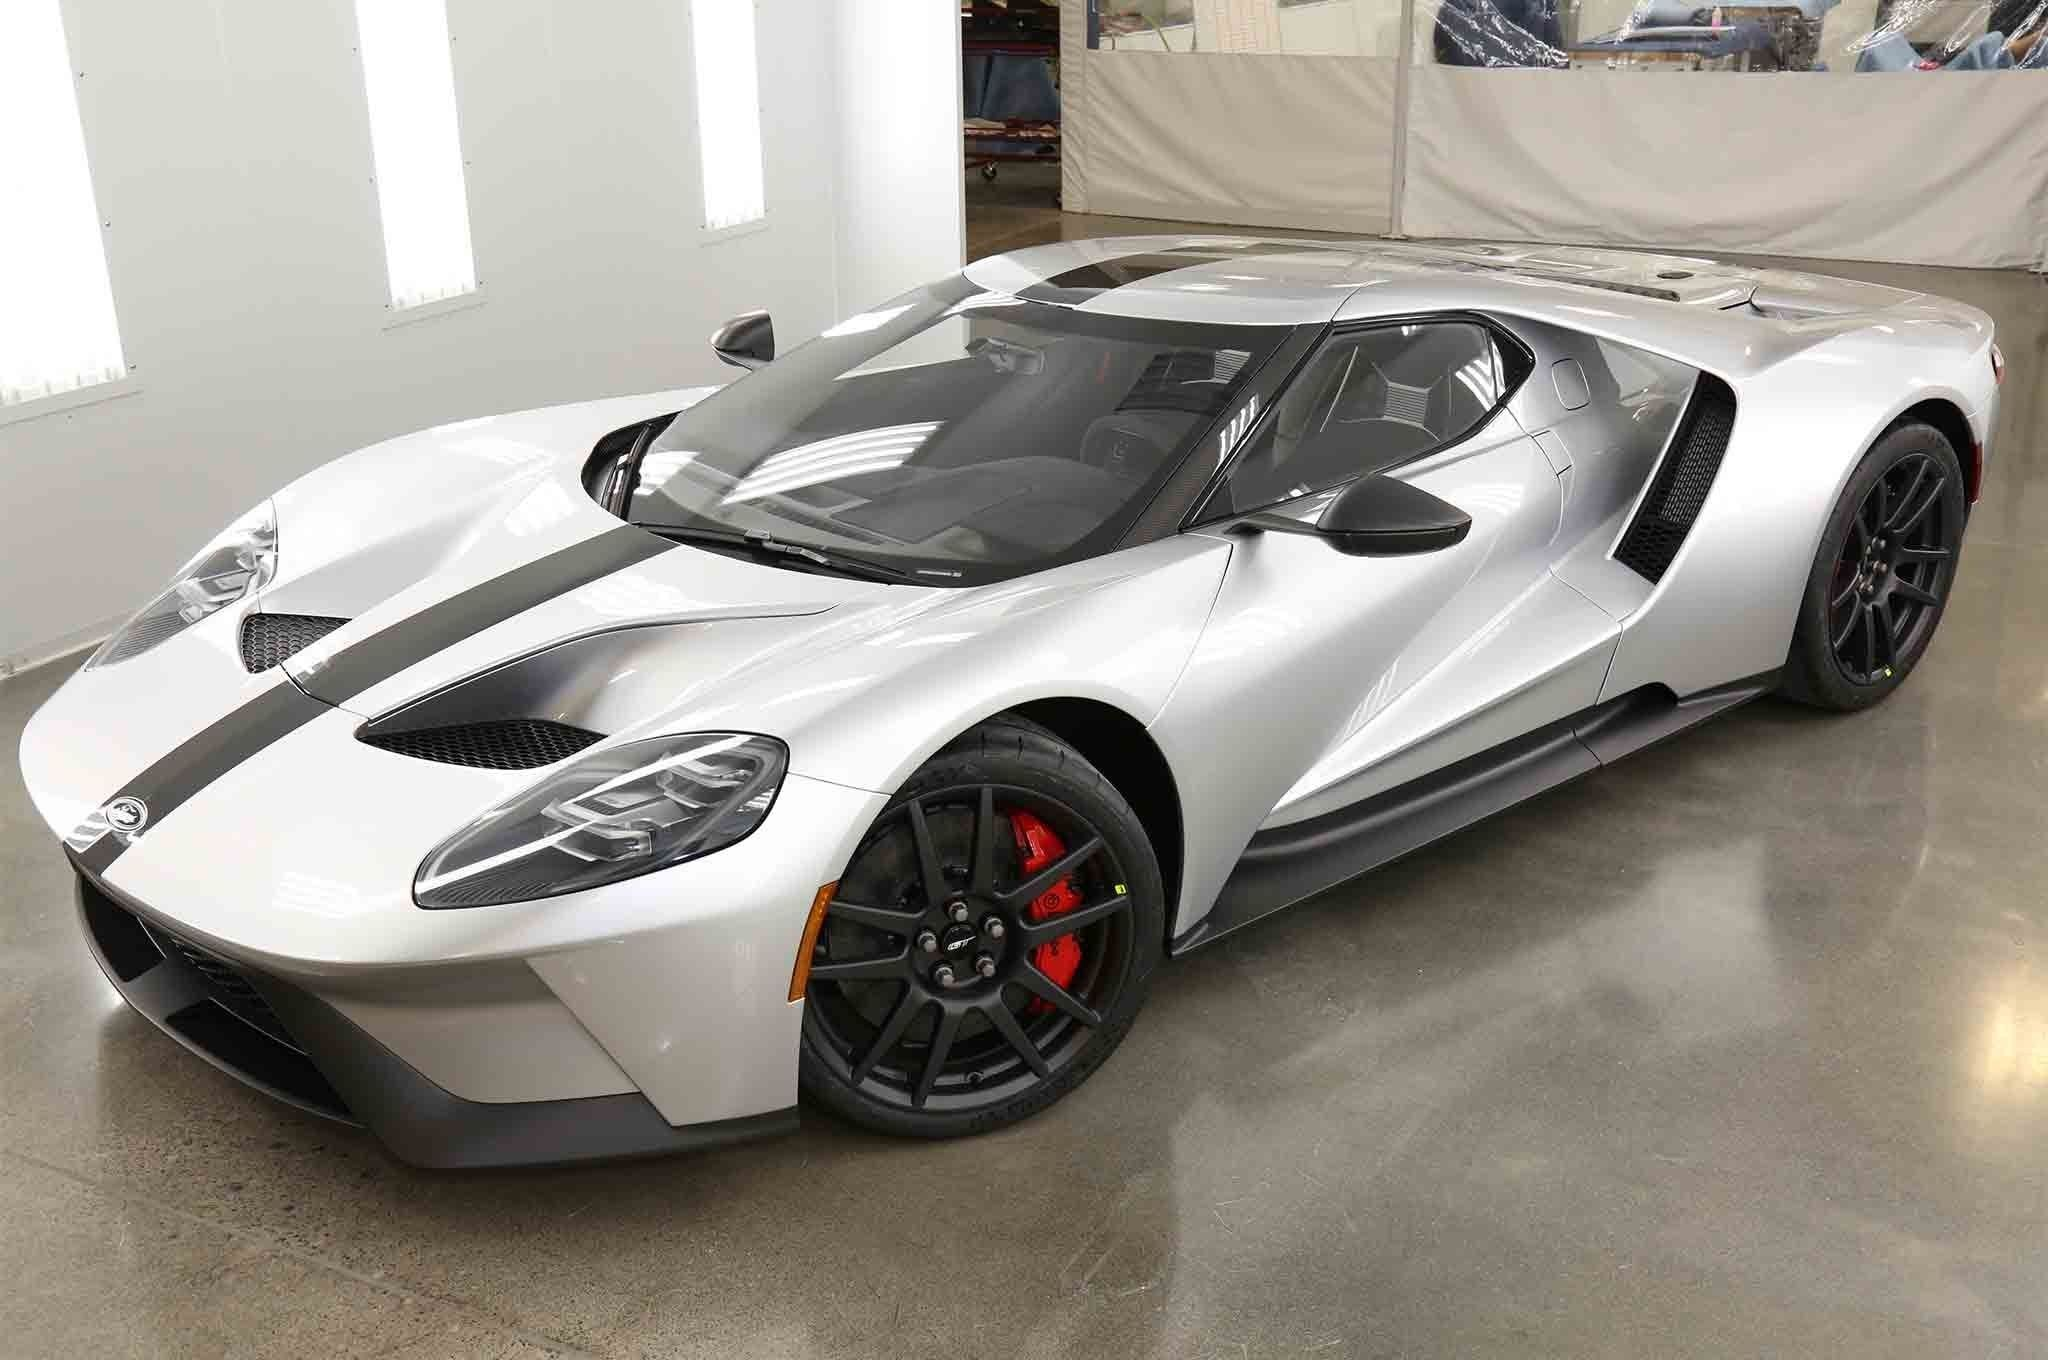 2019 Ford Gt Supercar Overview Ford Gt Car Ford Super Cars